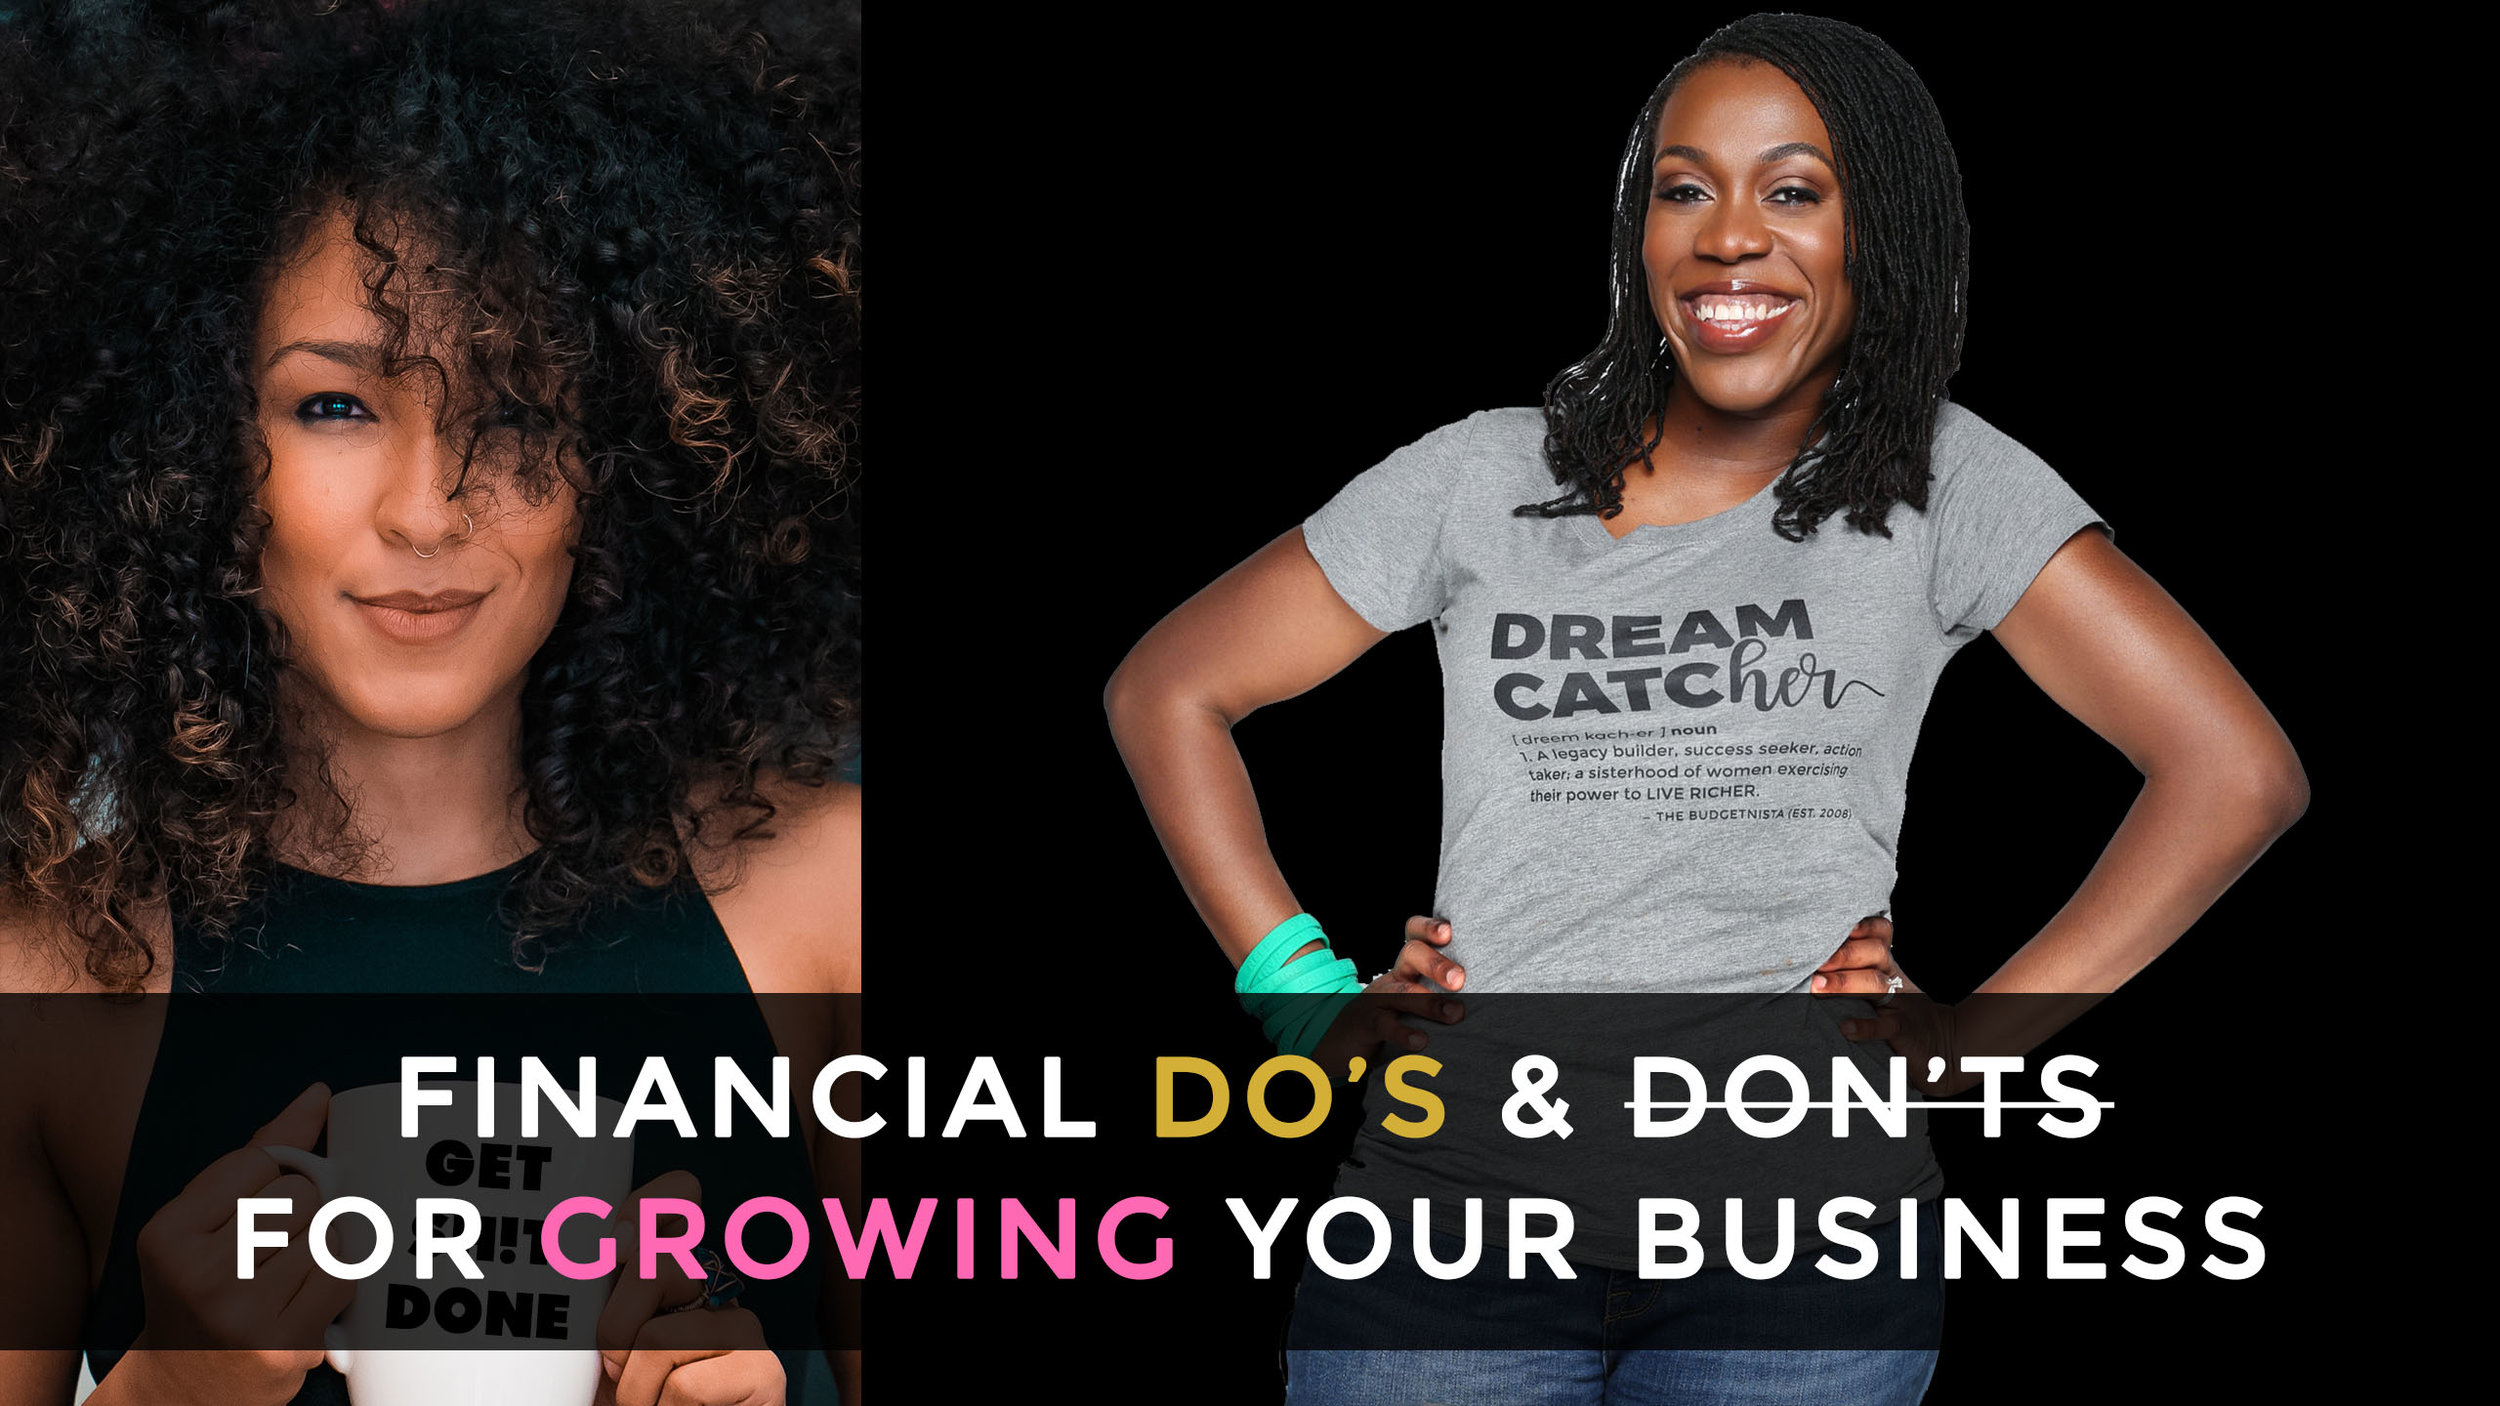 If you want your business to grow and scale, your finances have to be in order. Similar to a sturdy home, you have to lay the foundation to build something great long-term. Learn some financial do's and don'ts from Tiffany Aliche aka the Budgetnista, America's favorite financial educator.   WATCH NOW  ( Will be available in podcast format soon!)